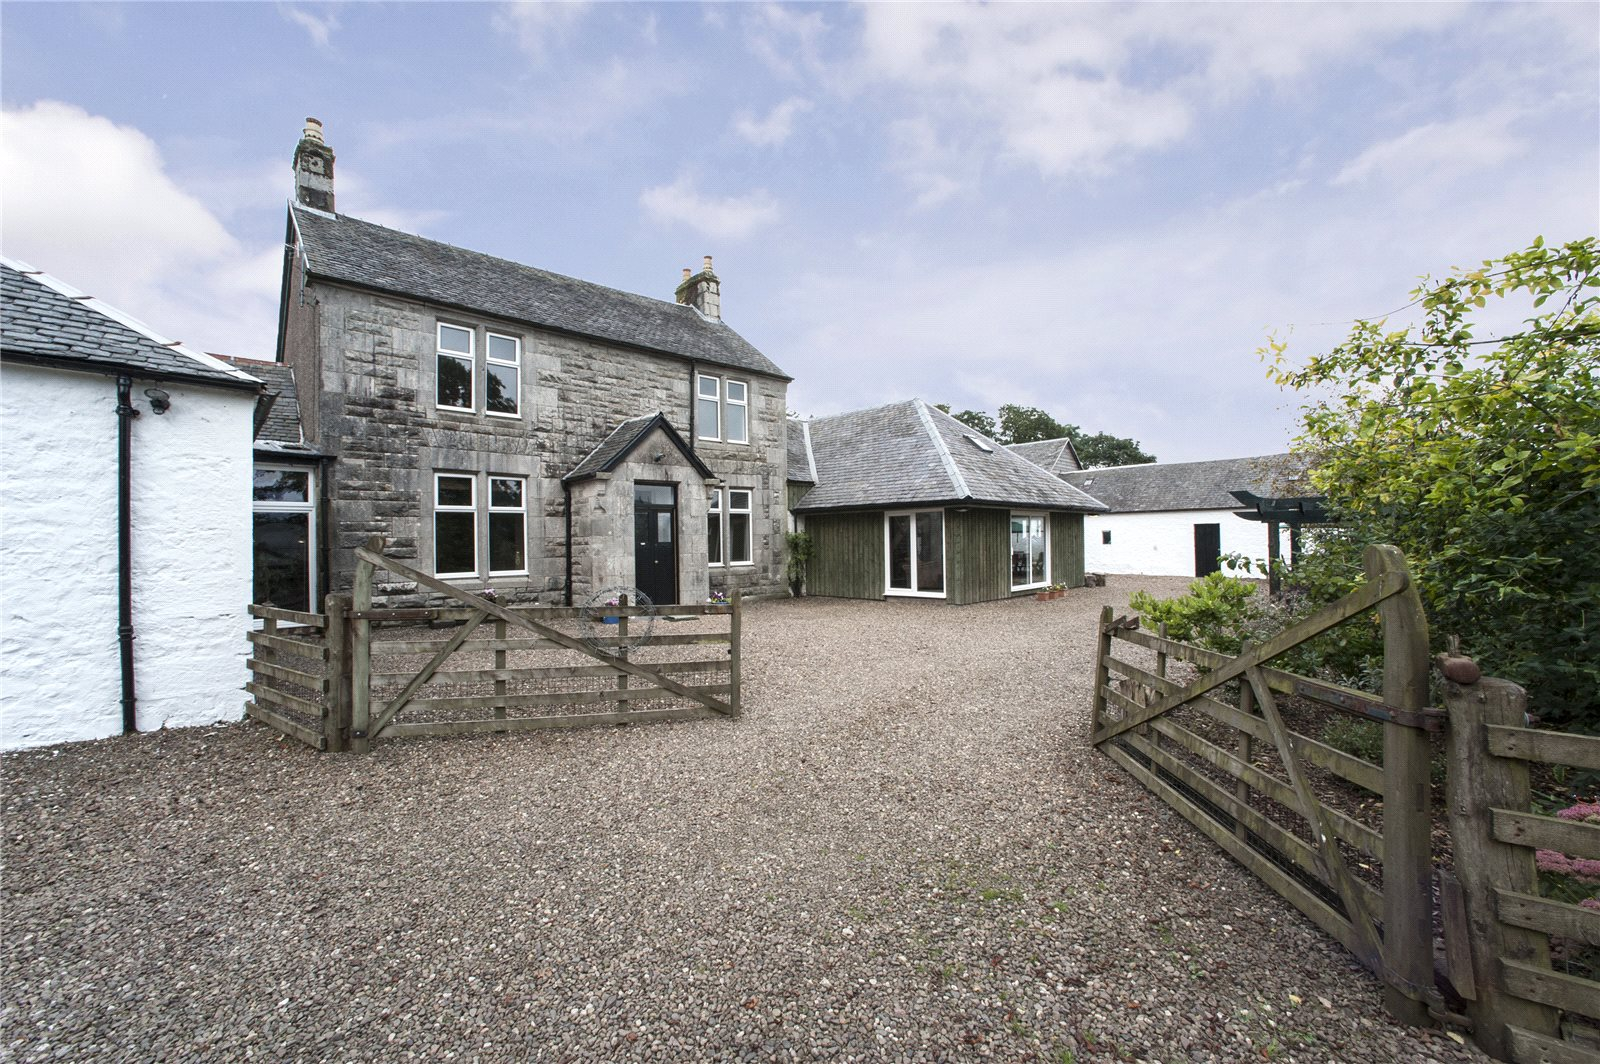 5 Bedrooms House for sale in Ryelands Farm, By Strathaven, South Lanarkshire, ML10